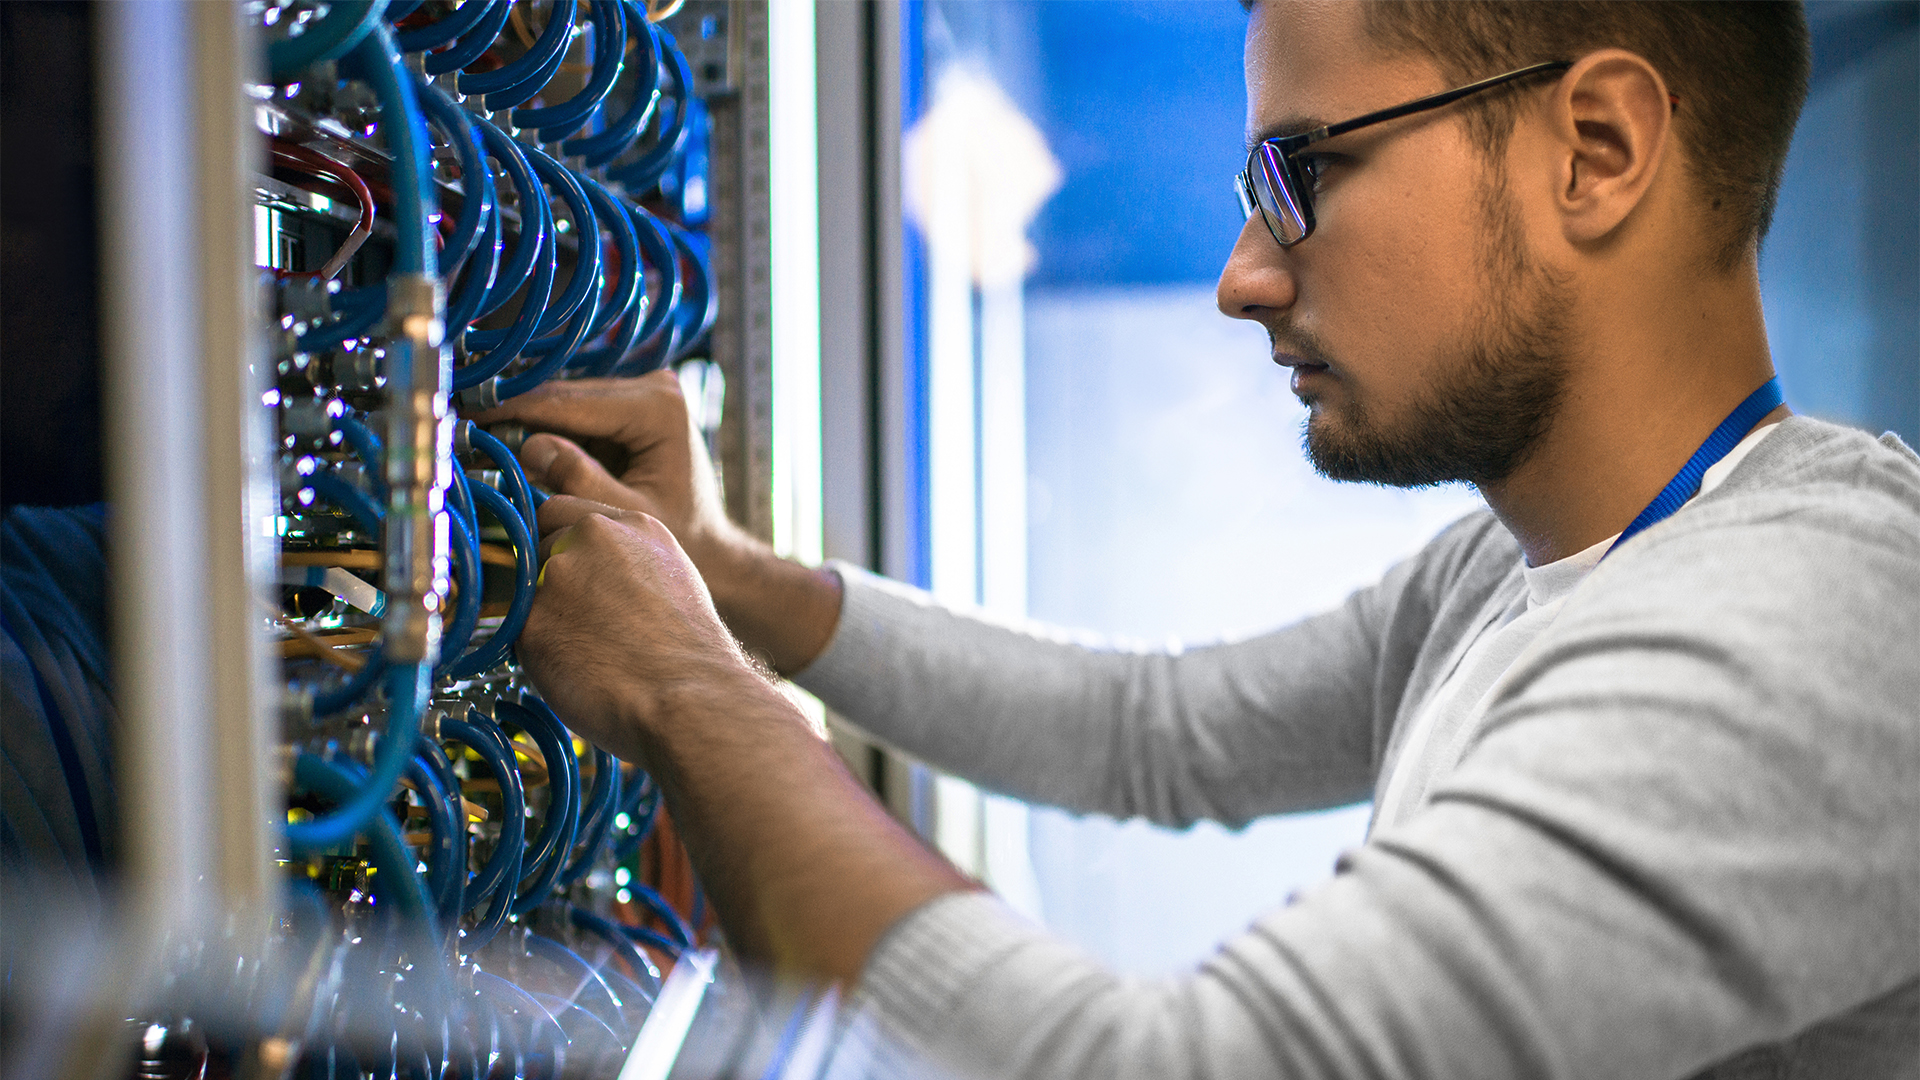 Student connecting cables in server cabinet while working in supercomputer data center